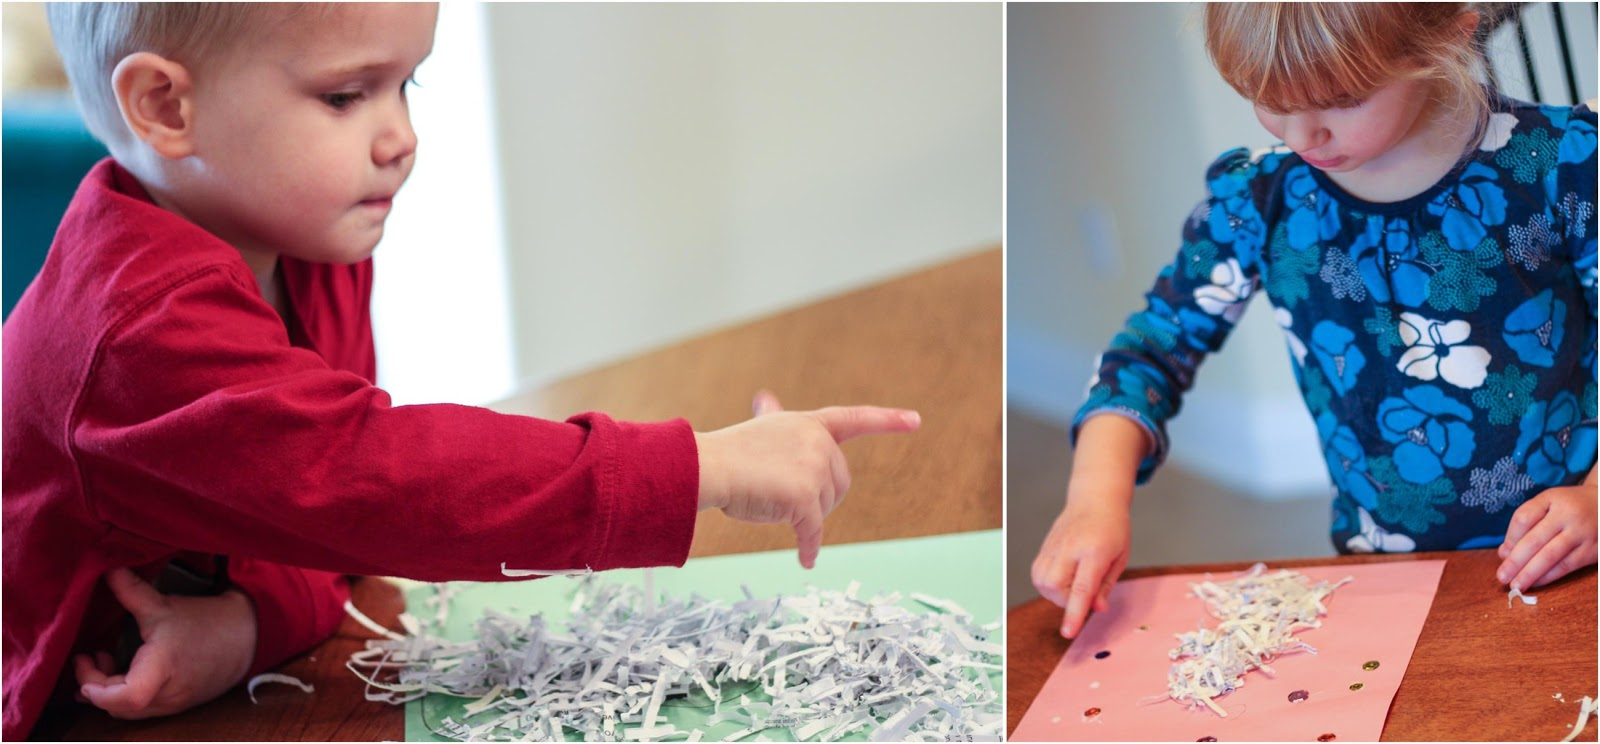 kids gluing shredded paper onto their craft